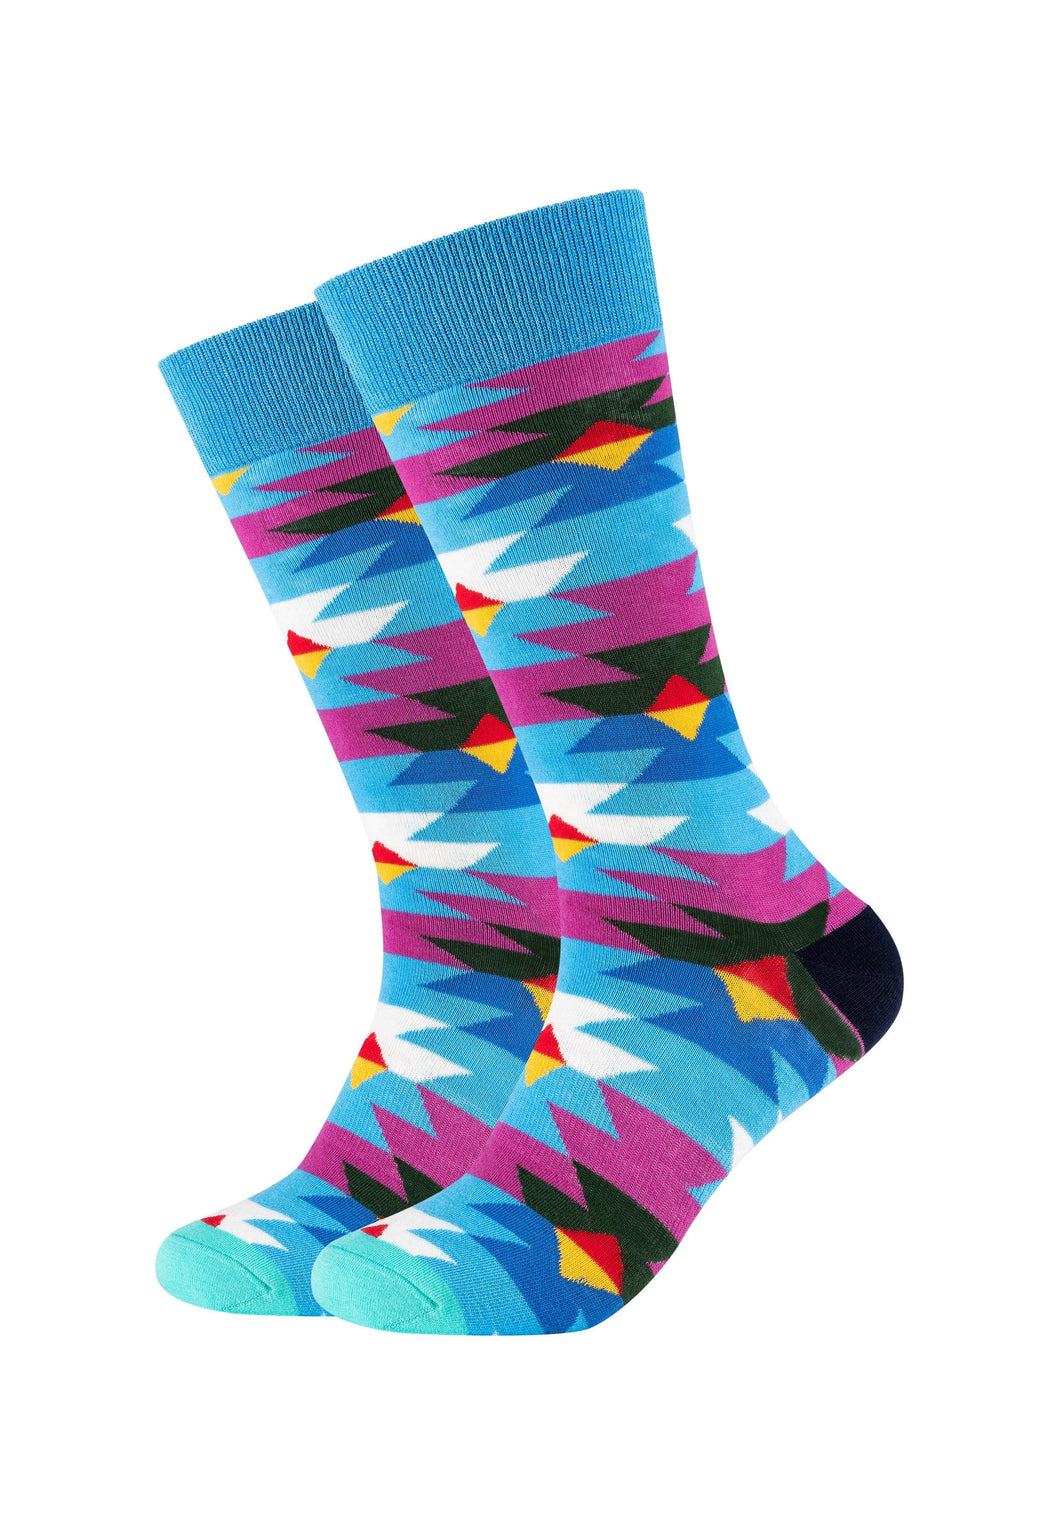 Herren Crew Socks patterned 2er Pack